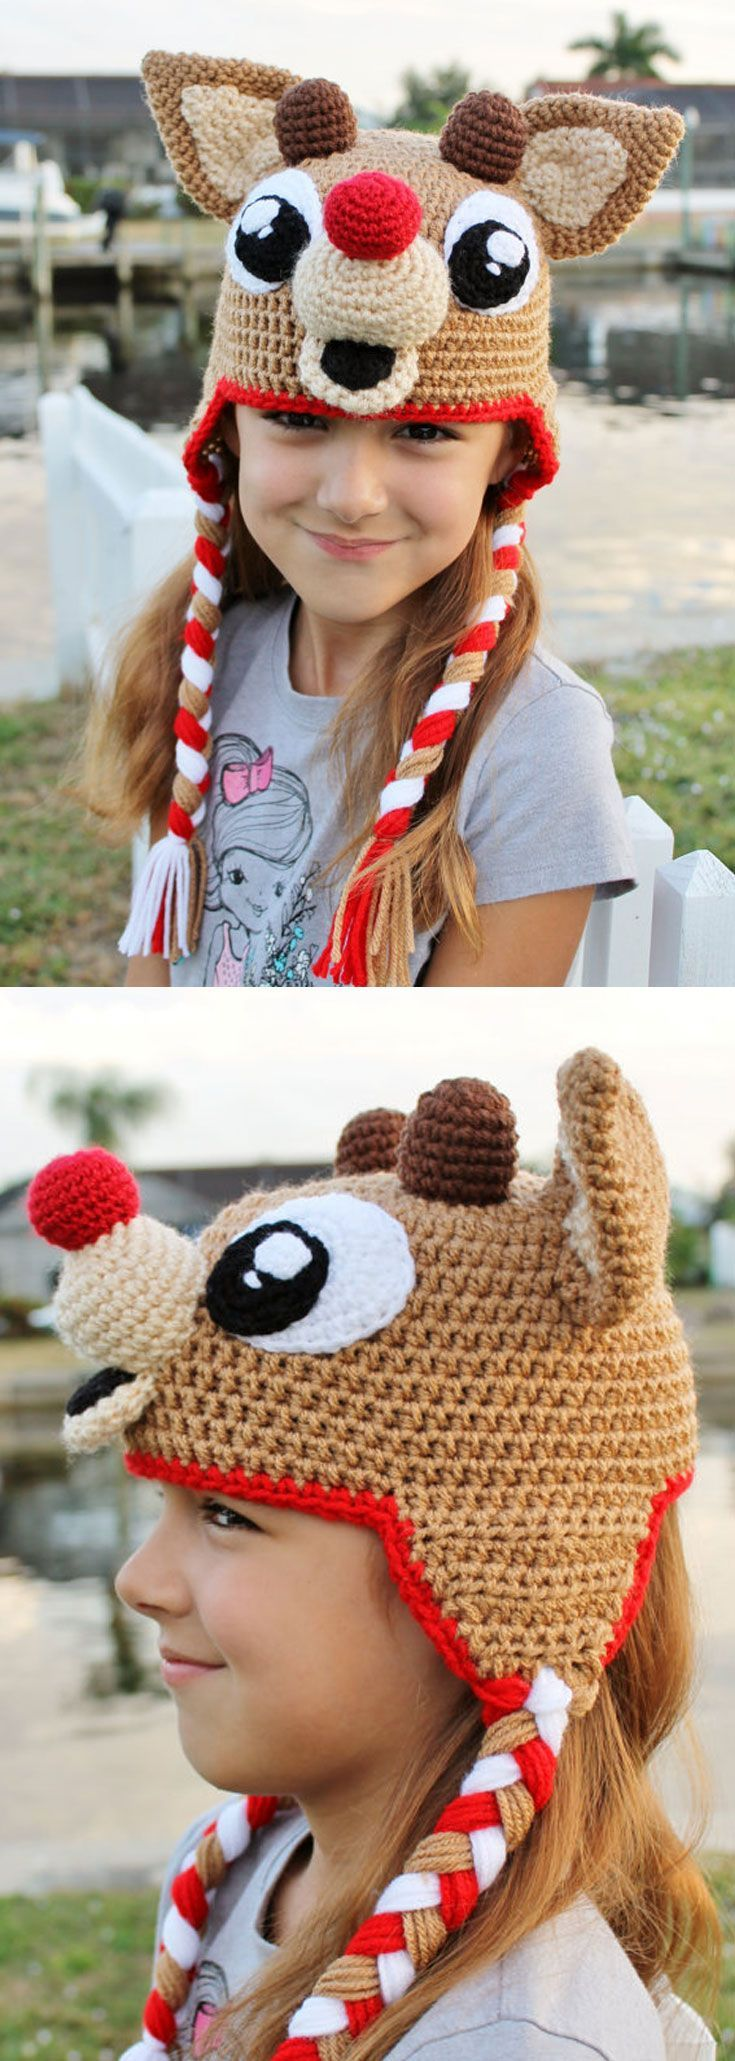 How cute is this adorable Rudolph hat? I love everything about it - the nose, the cute little antlers, and the big eyes! This would make a great accessory for Christmas photo shoots! (affiliate link)